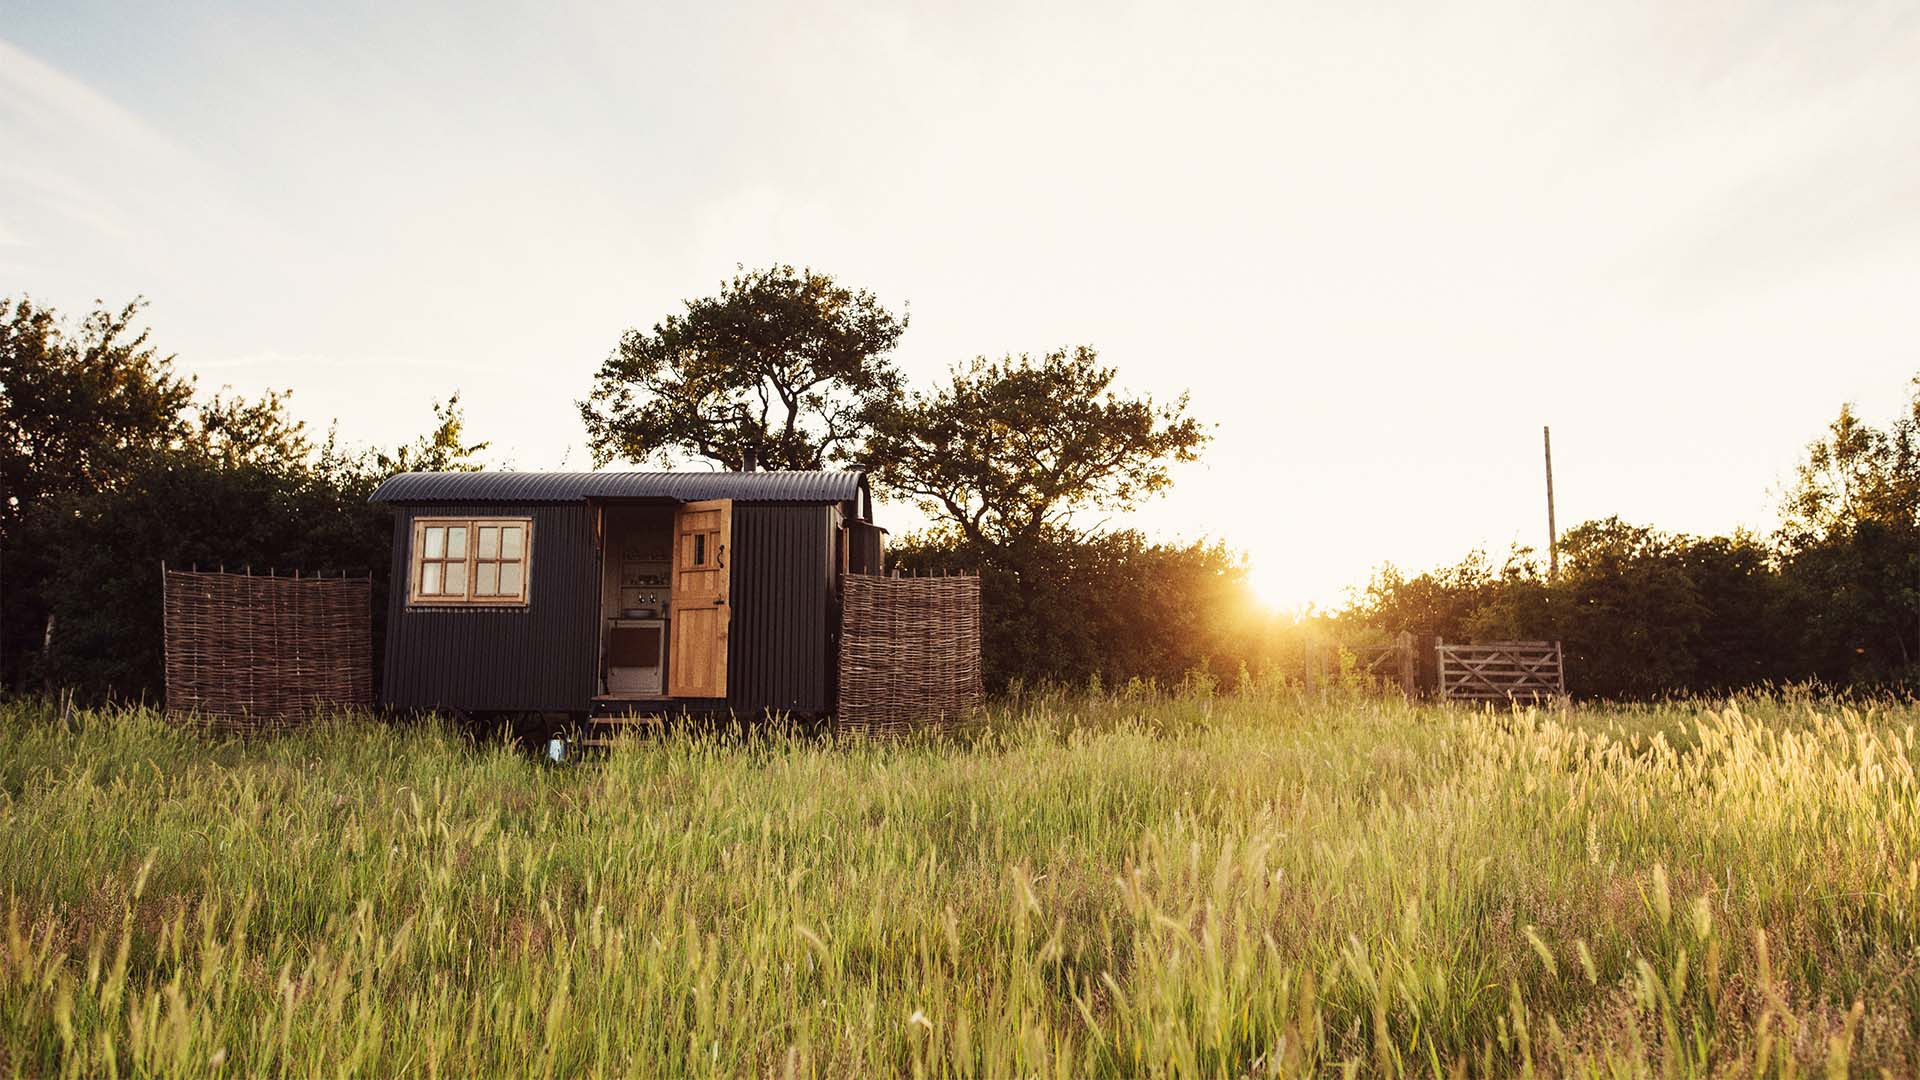 Shepherd's hut at Elmley Nature Reserve, Kent